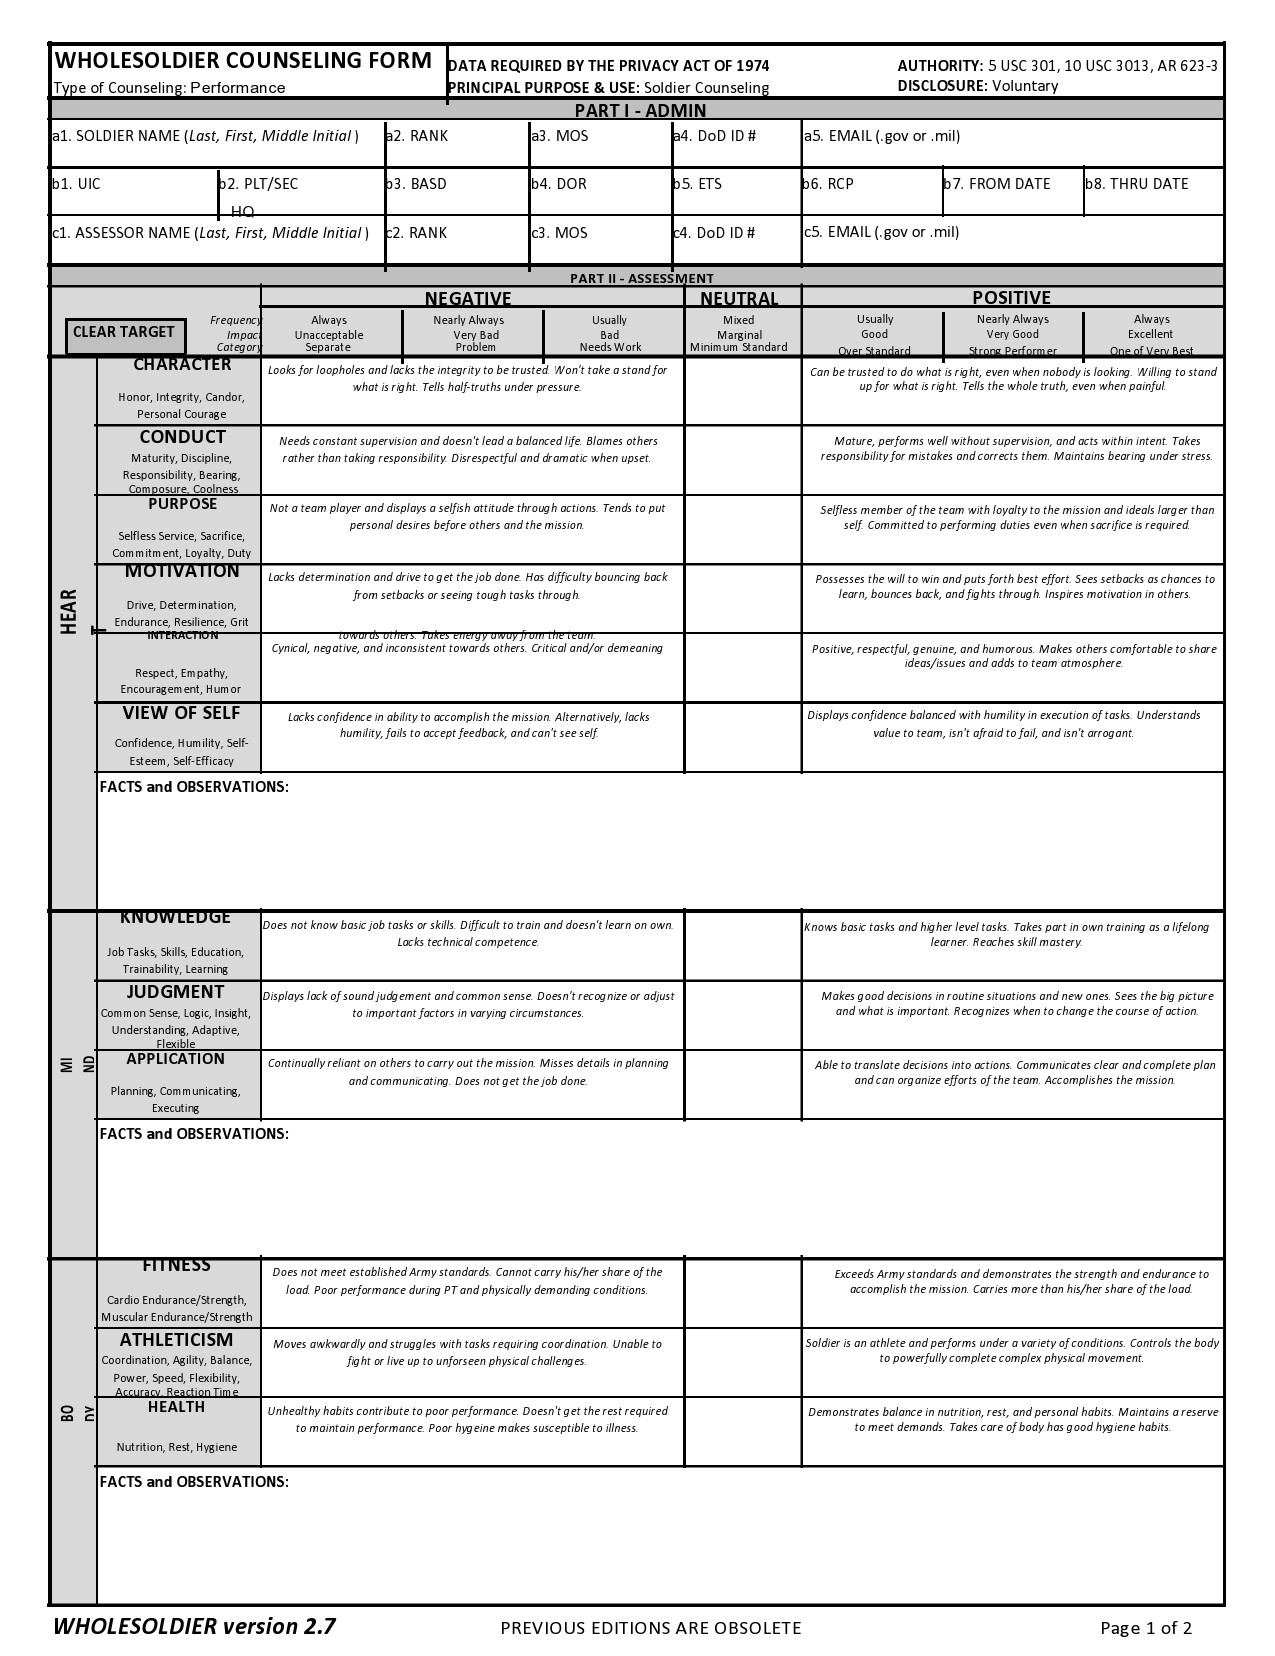 Free army counseling form 02